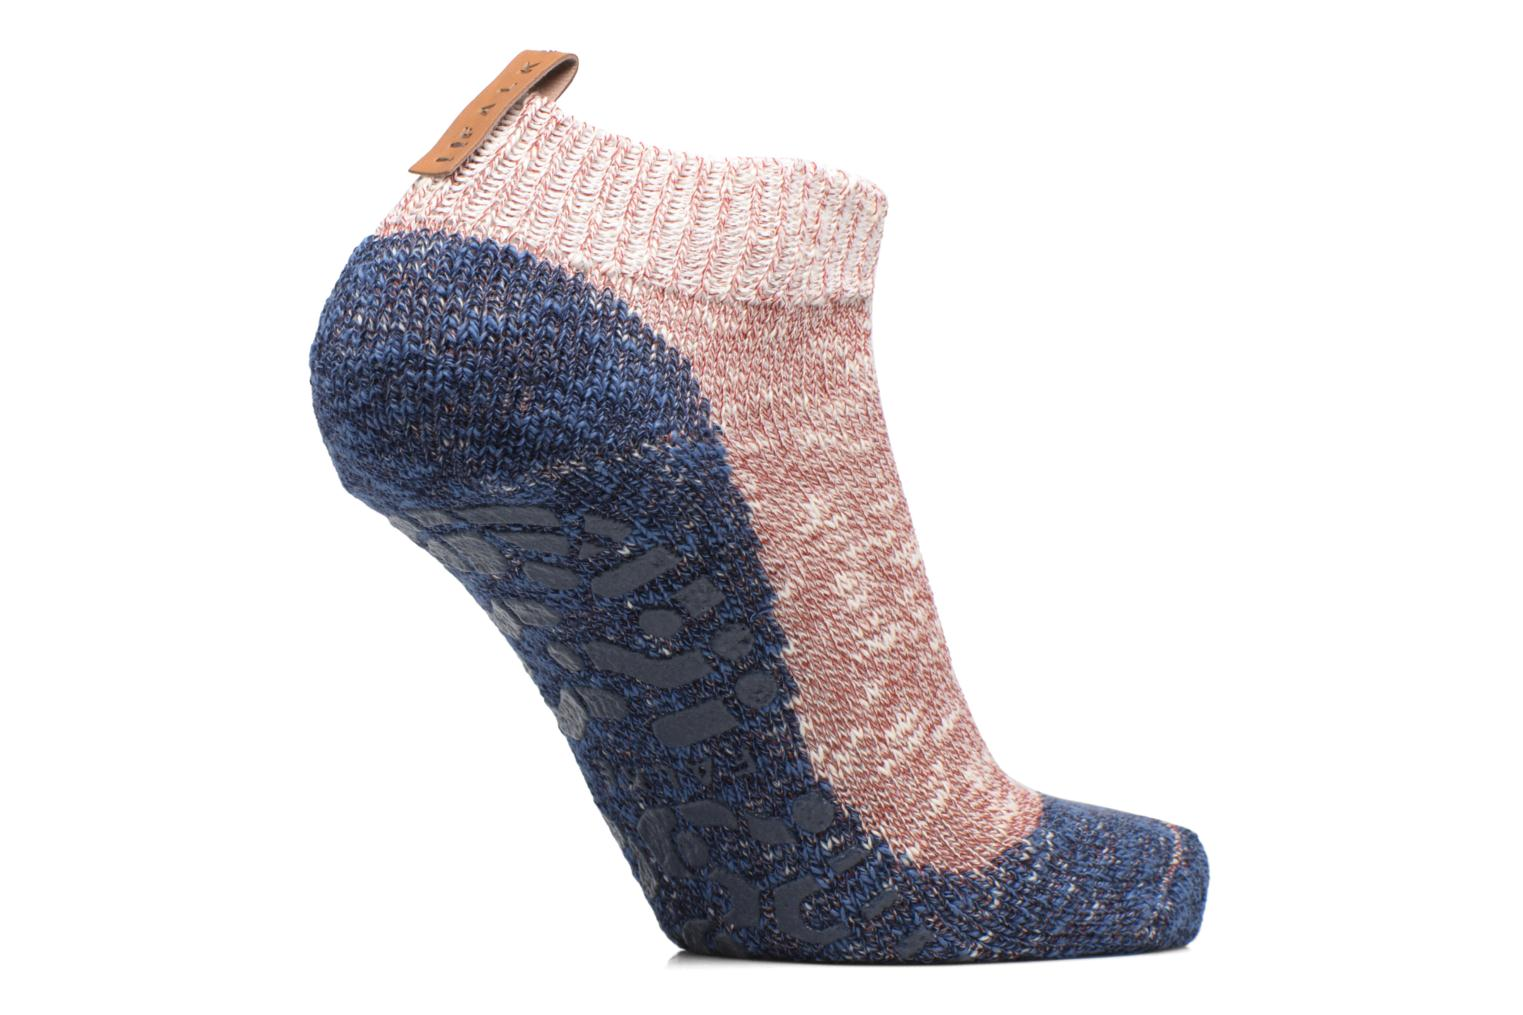 Chaussons-chaussettes Homepads 8430 OXFORD